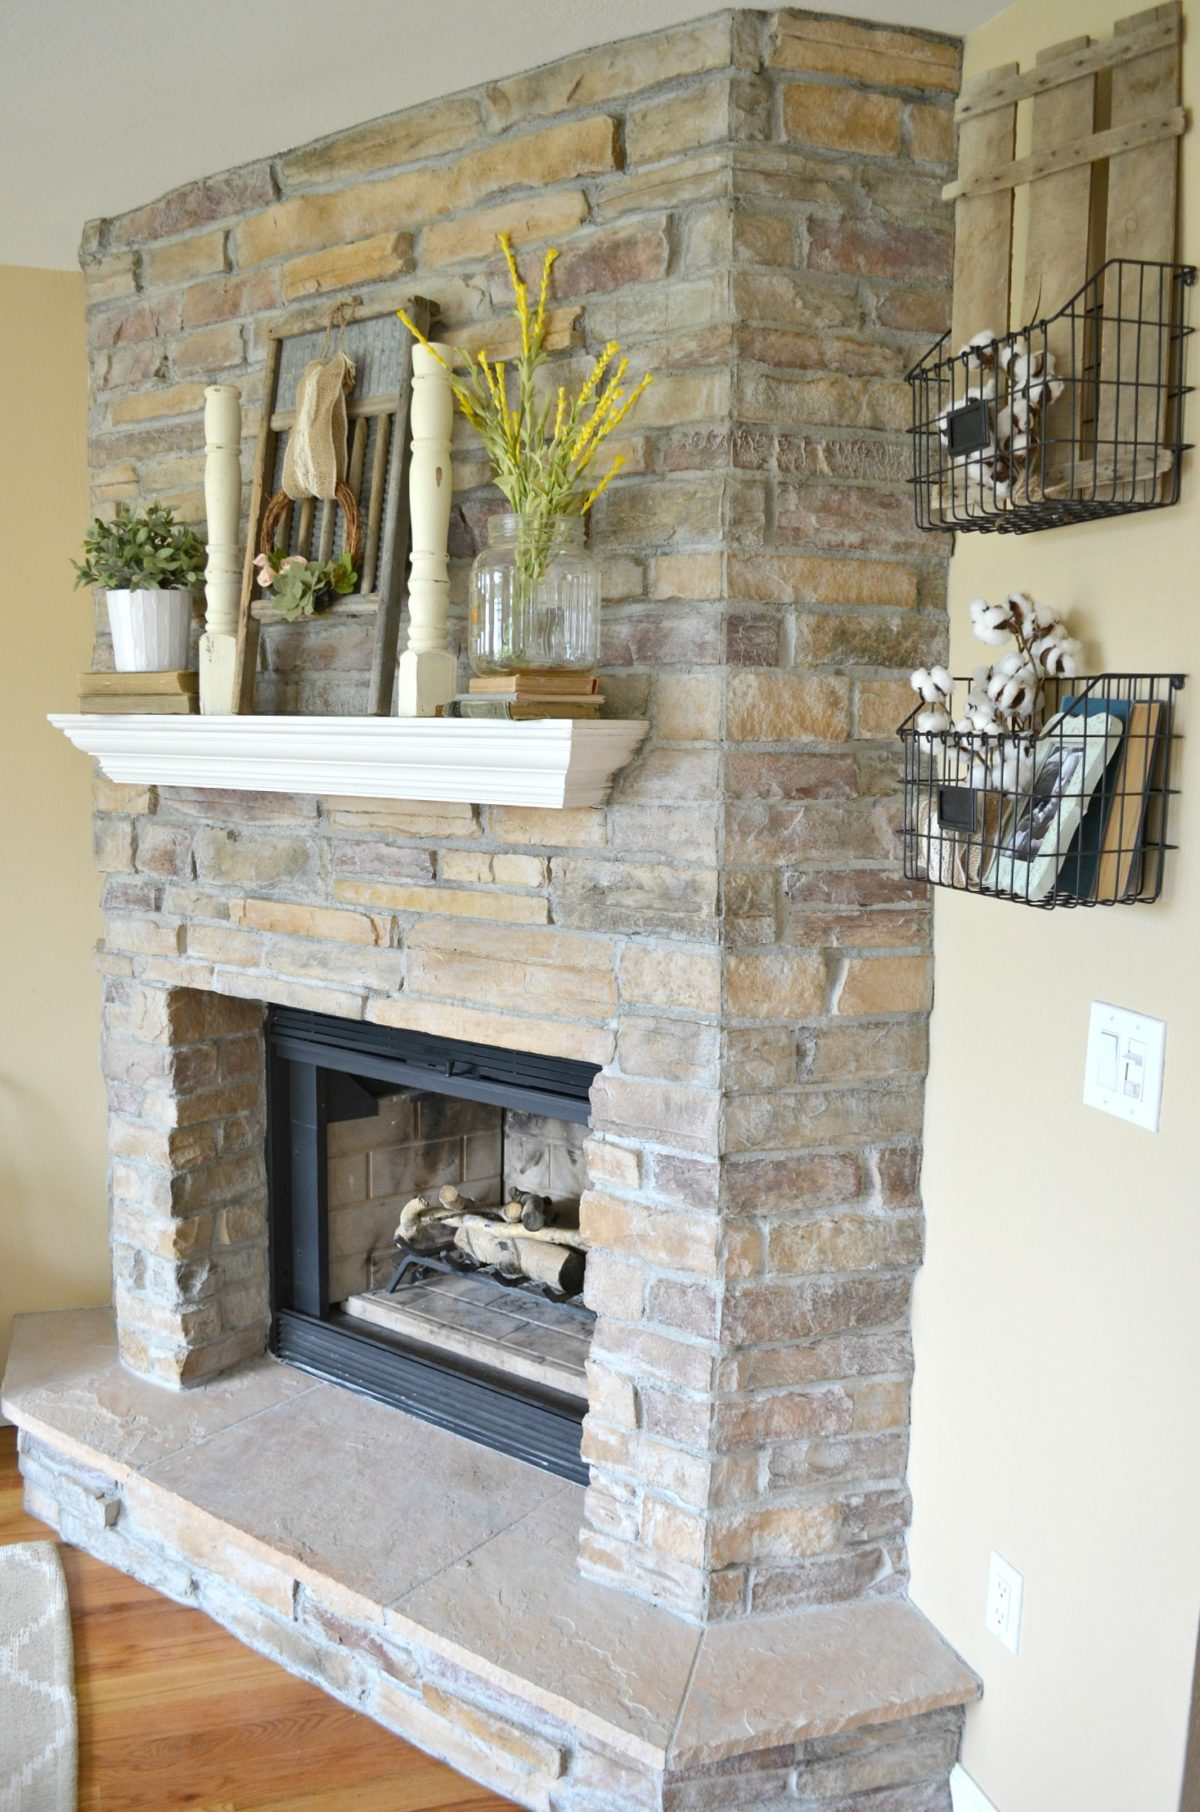 Summertime mantel and fireplace with vintage decor